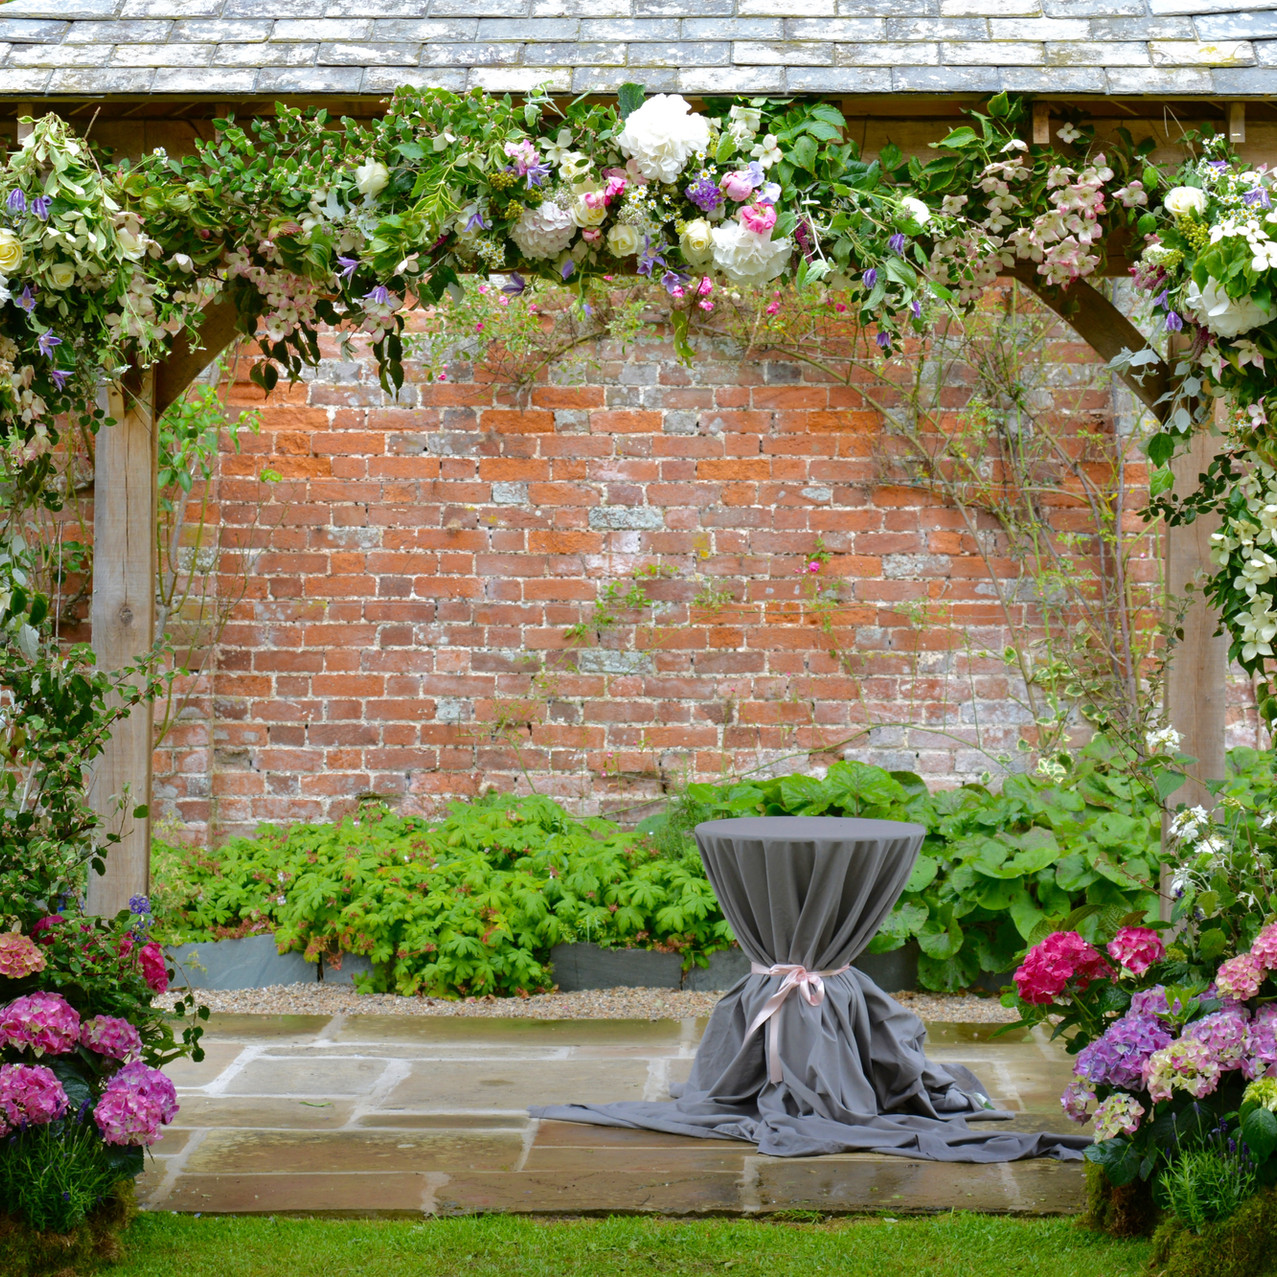 Ceremony Pergola at Kingston House Estate, fully fressed with lush seasonal foliage an climbing flowers with a base of pink and white hydrangeas.